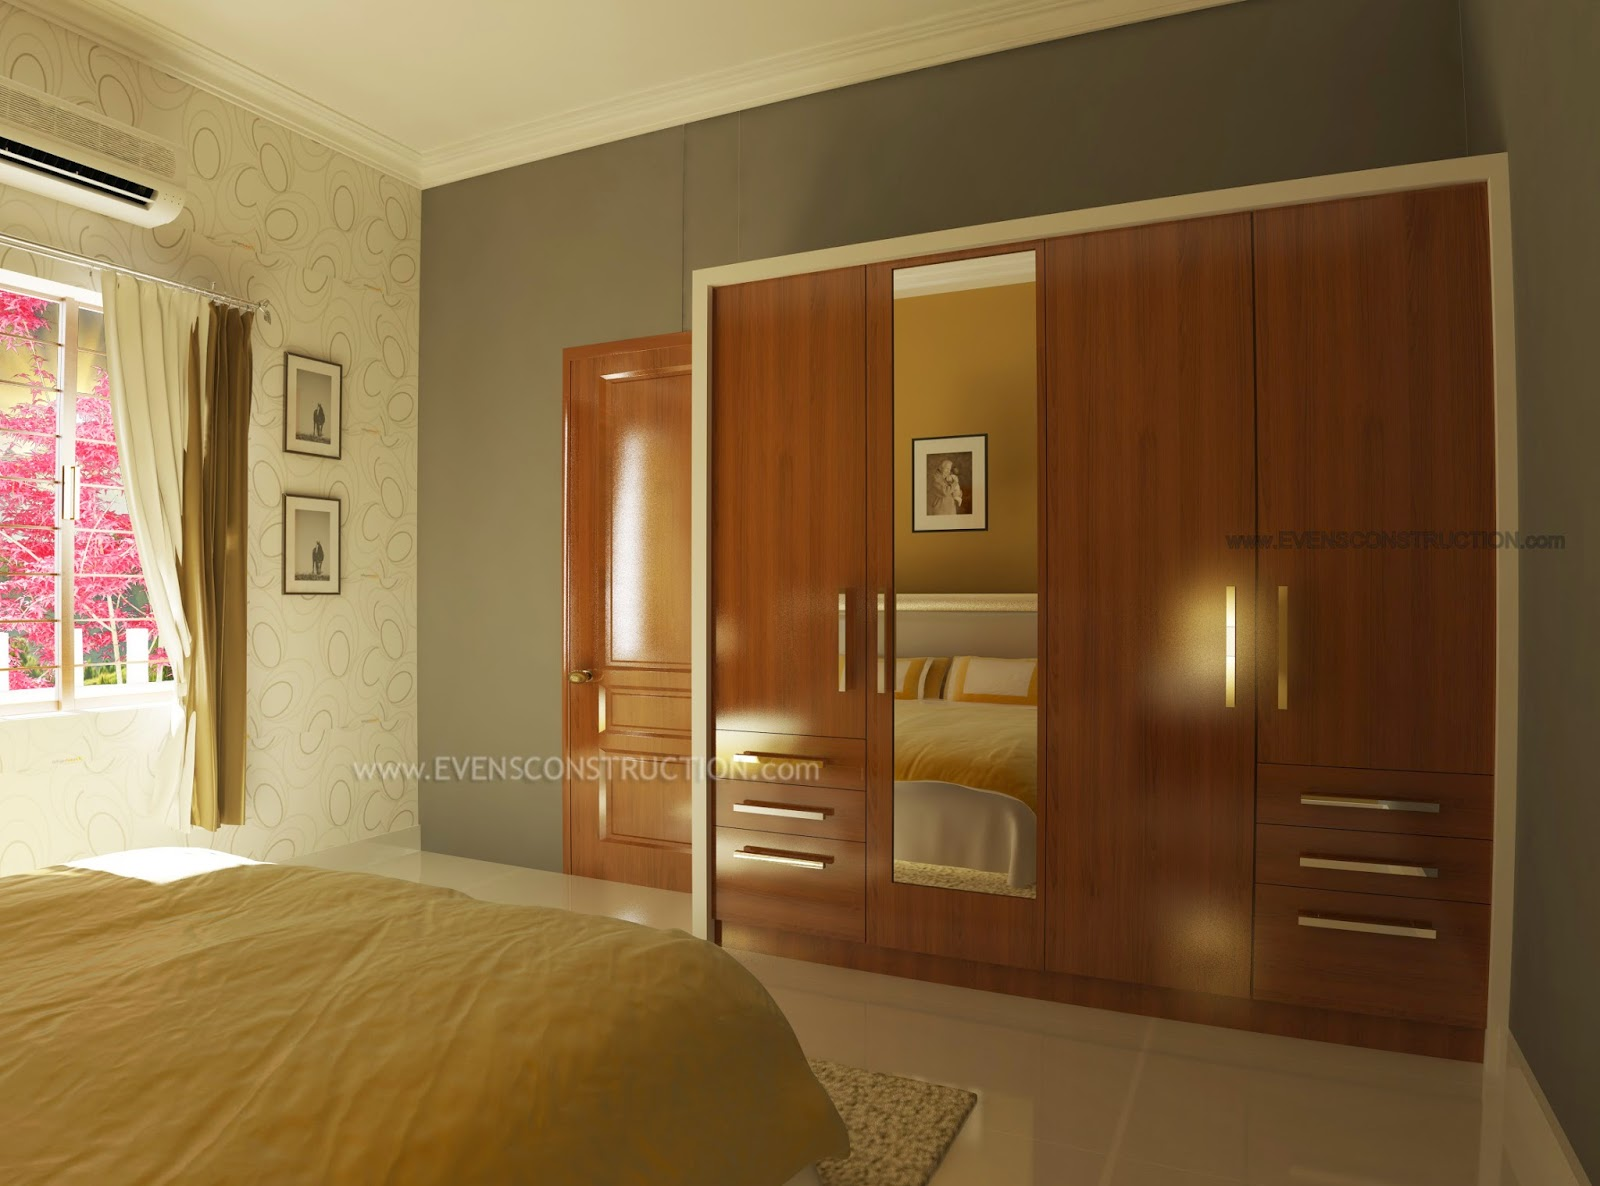 Evens Construction Pvt Ltd Wardrobe In Master Bedroom